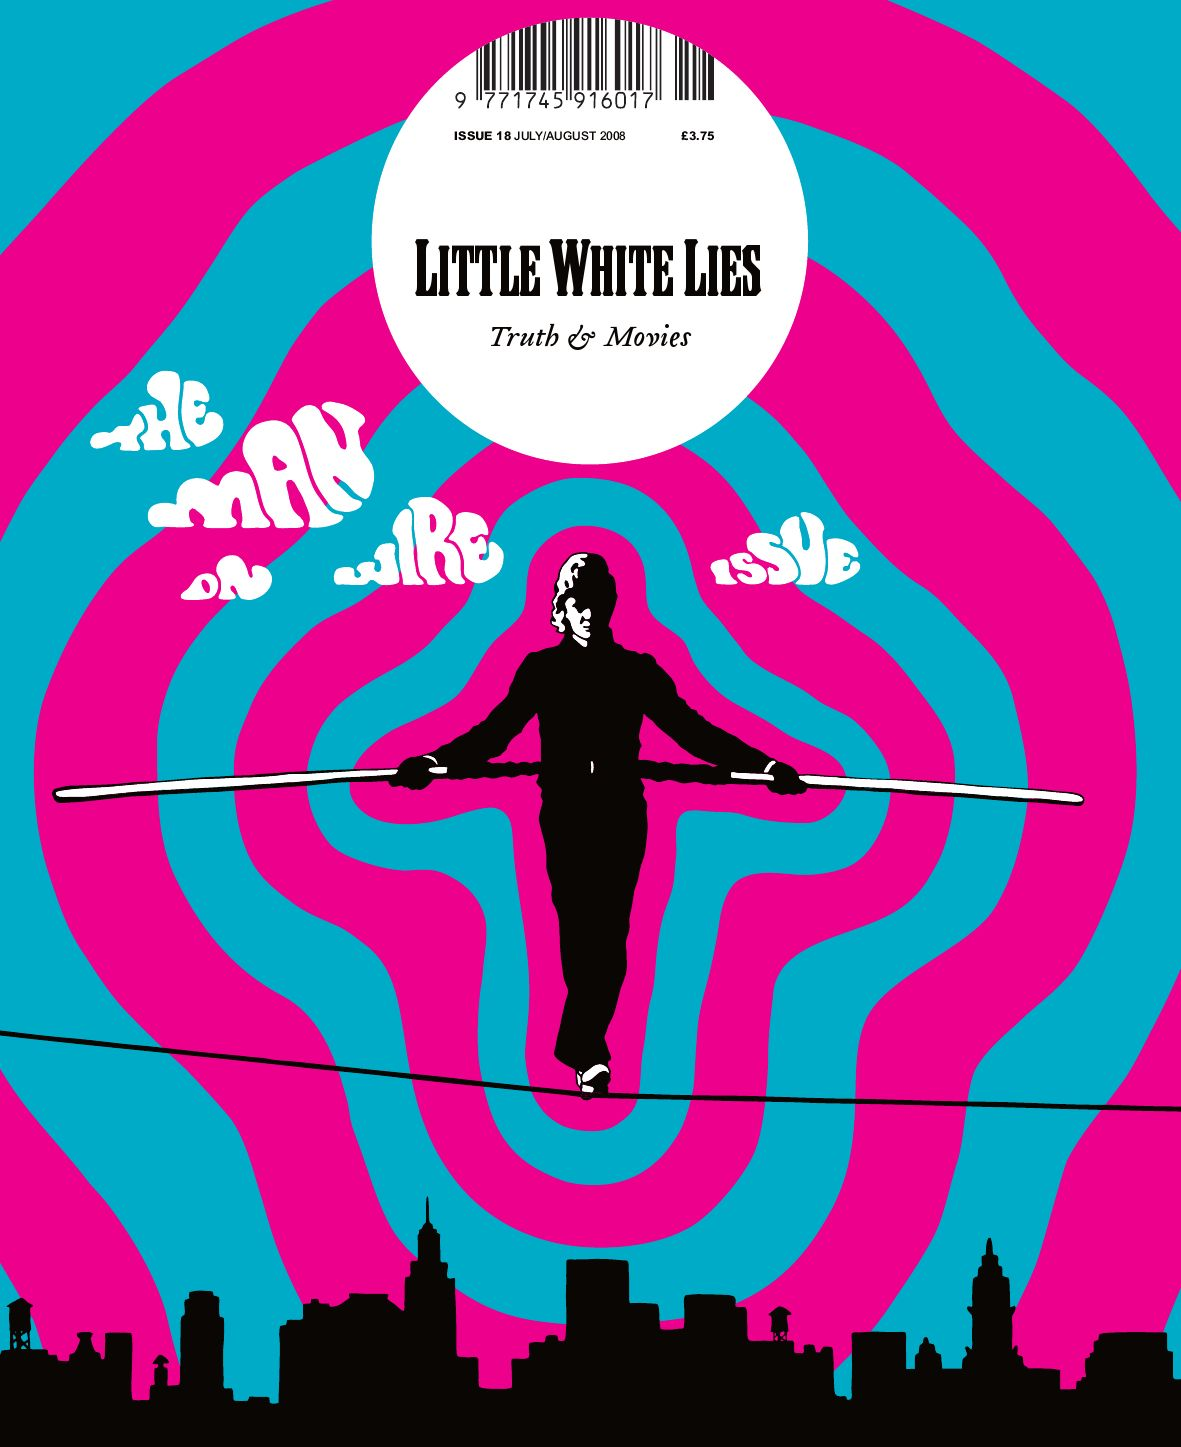 Little White Lies 18 The Man On Wire Issue By The Church Of London Issuu